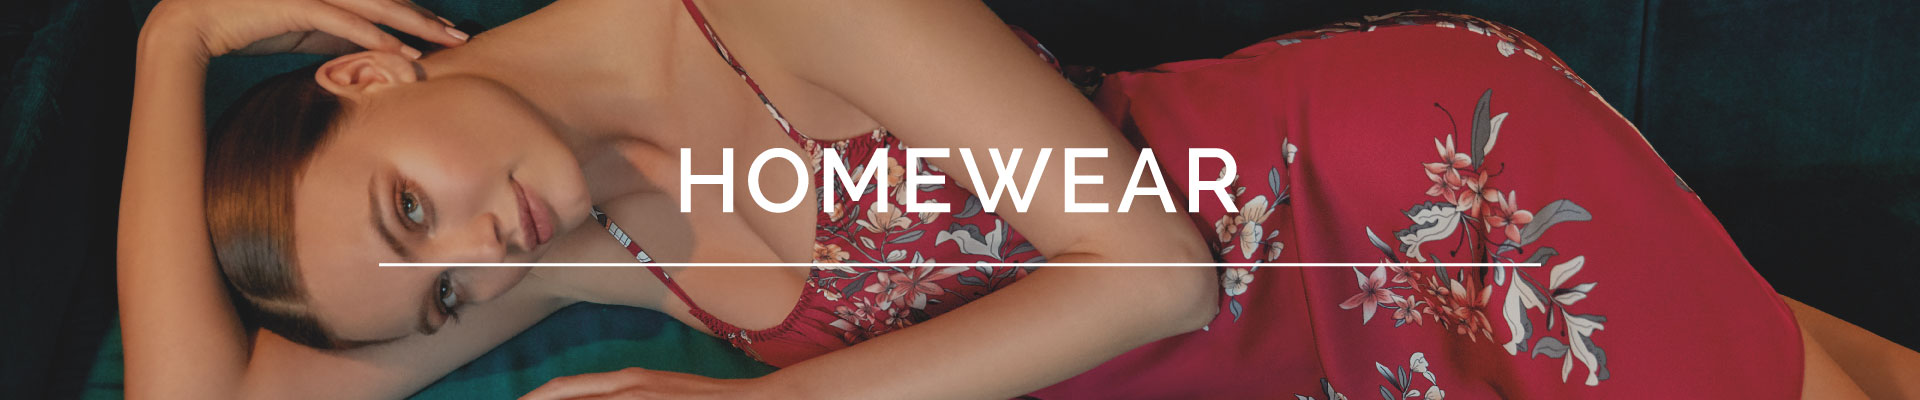 categoria-homewear